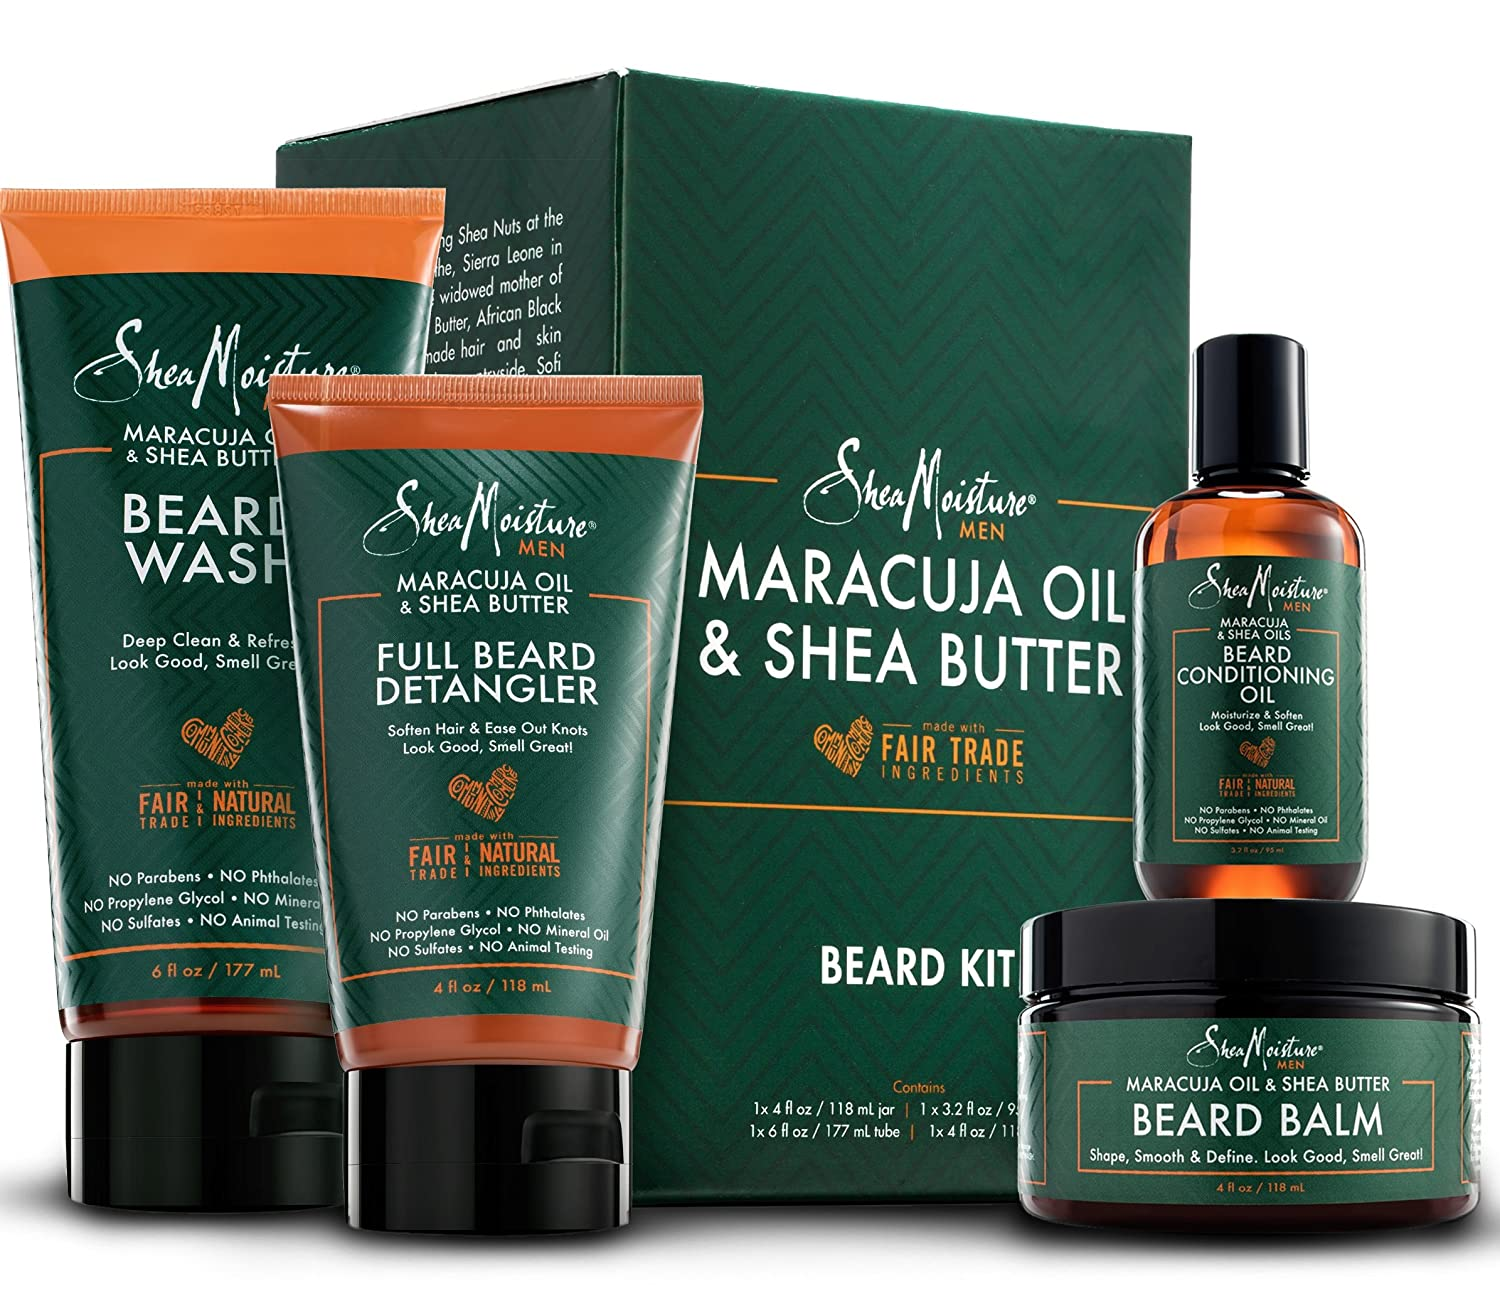 Shea Moisture Complete Beard Kit   All Natural Ingredients   Maracuja Oil   Shea Butter   Beard Balm   Beard Conditioning Oil   Beard Wash   Beard Detangler   Gift Box